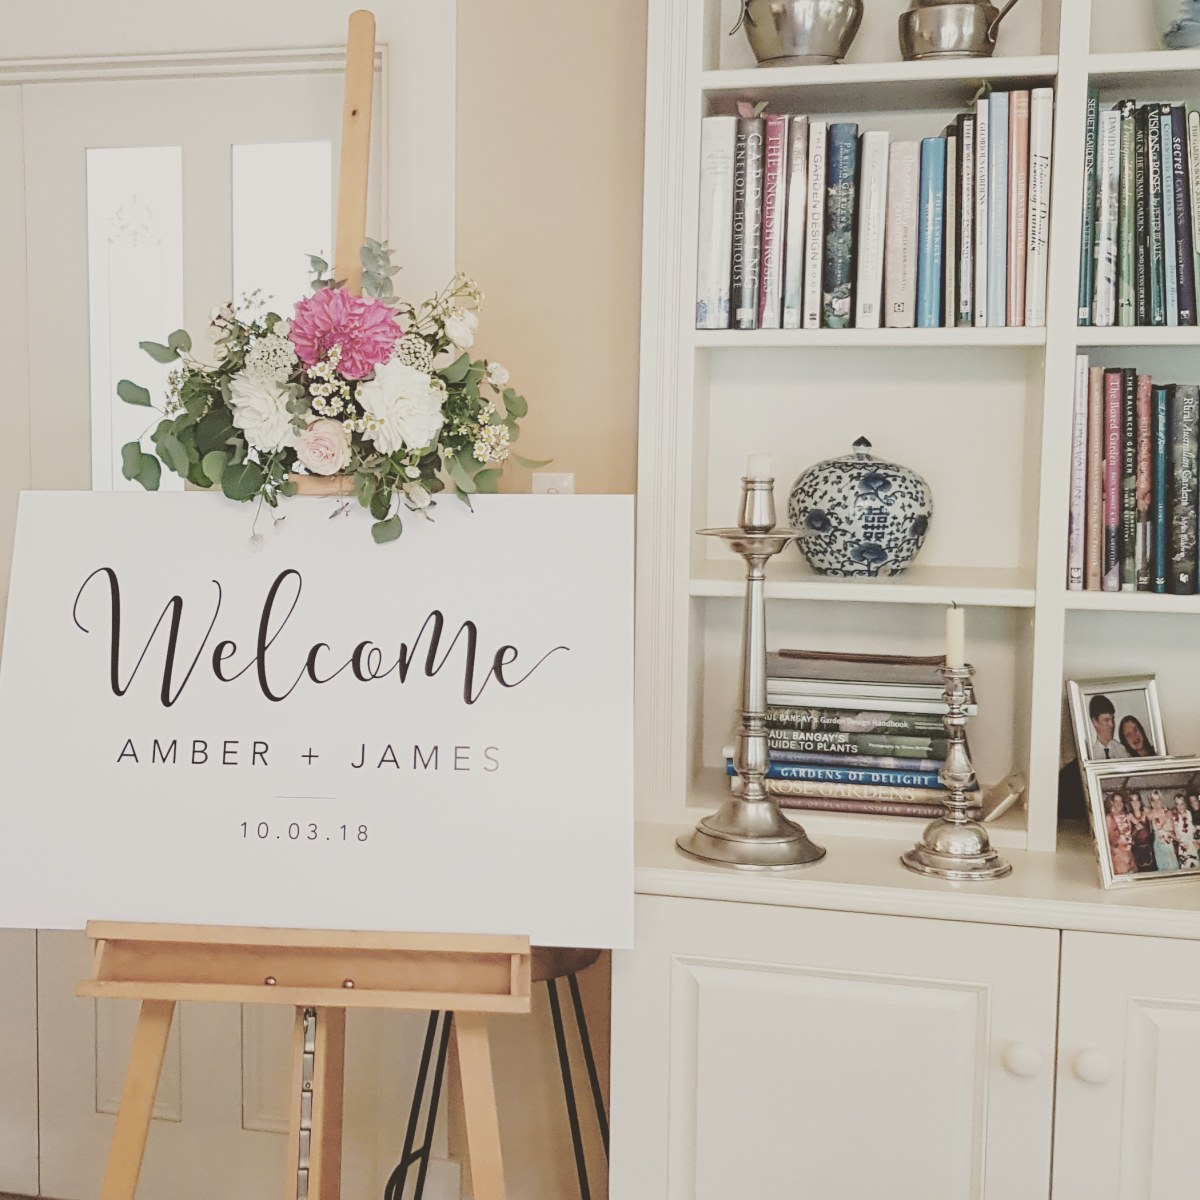 Poem recited for Amber and James' Wedding 10 March 2018